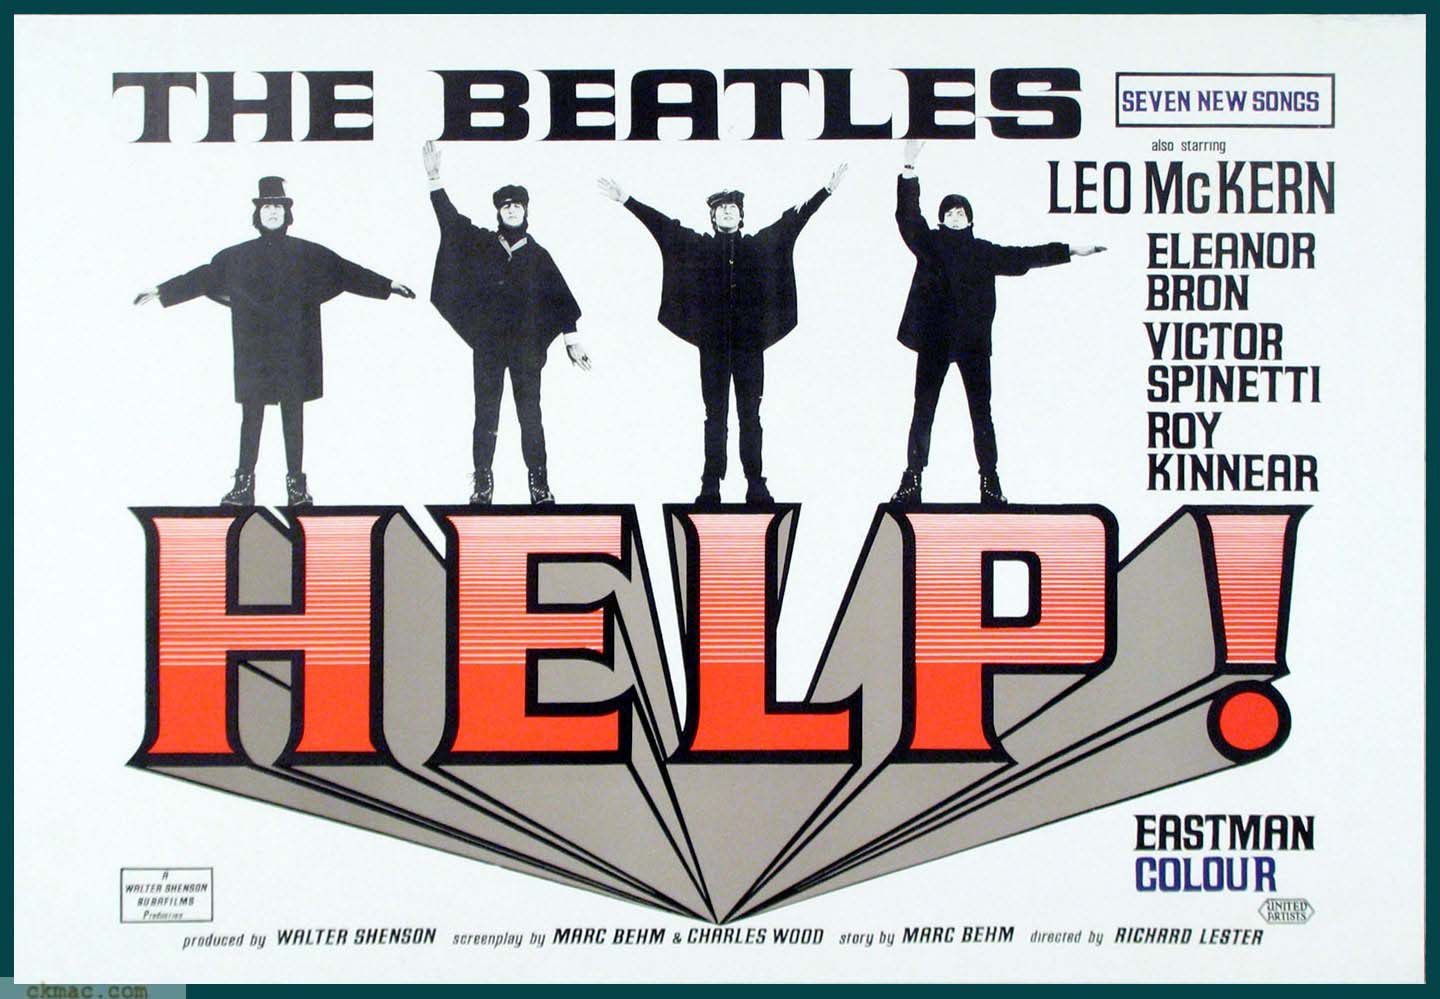 actual beatles movie help 1965 theater lobby placard